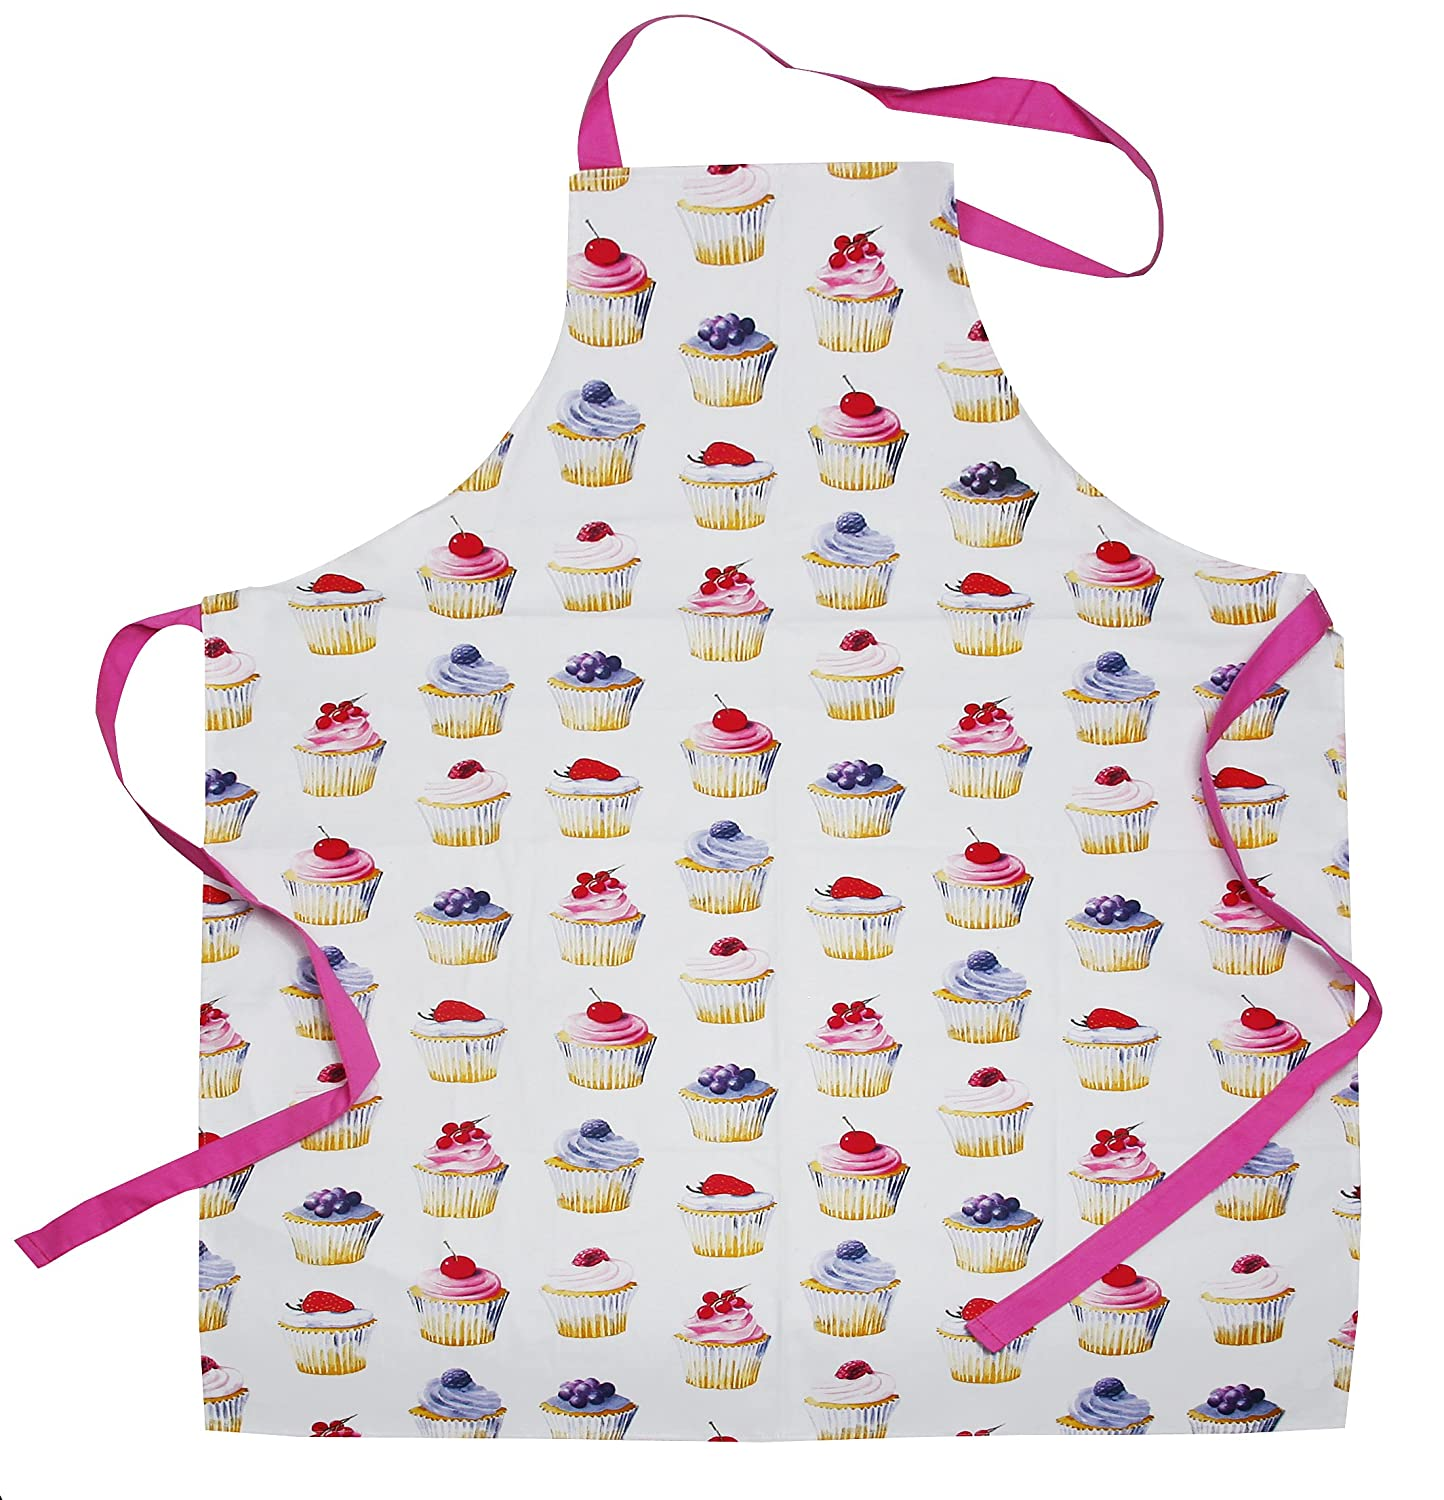 Beautiful CupCakes Design Ladies Apron - Made From 100% Cotton With Printed Cupcake Pattern - Ideal Gift Idea For Any Ladies Who Love To Bake Lesser & Pavey